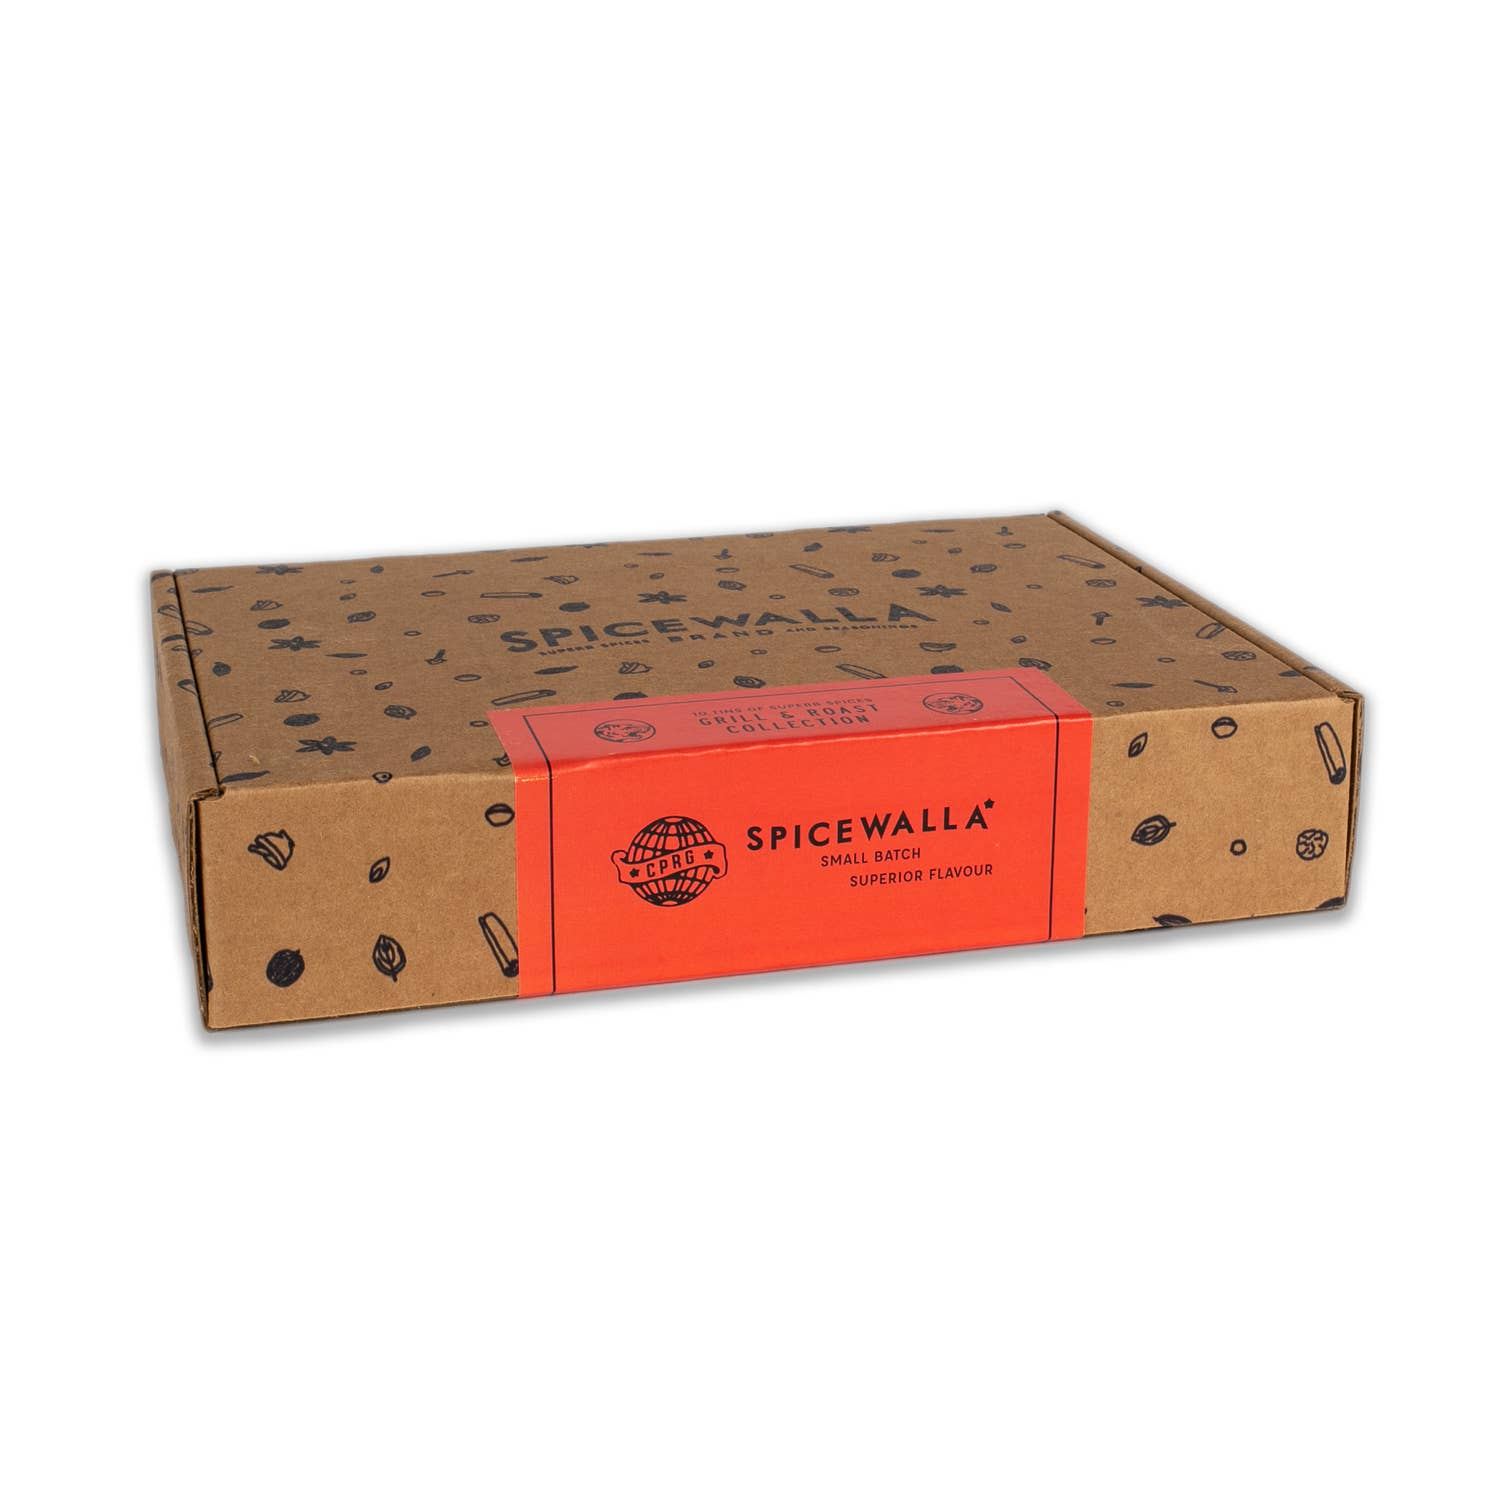 Spicewalla Small Batch Spices Gift Box